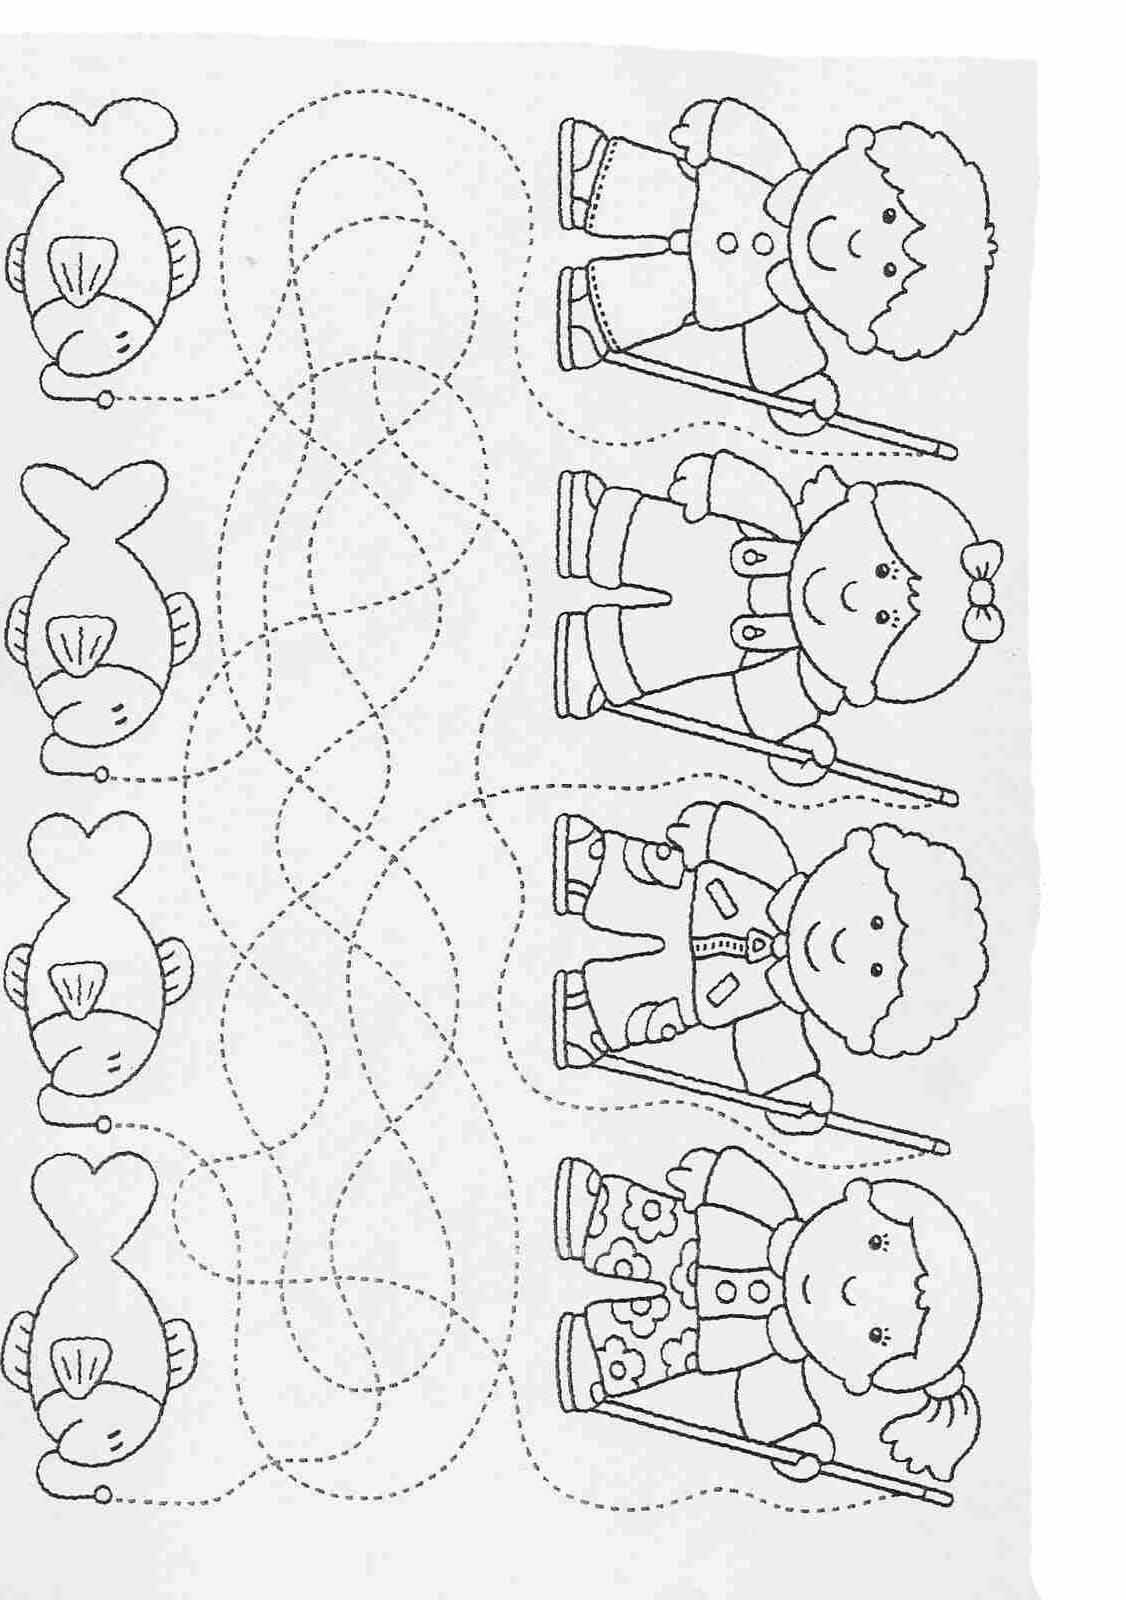 Elementary School Worksheets Complete And Colour 37